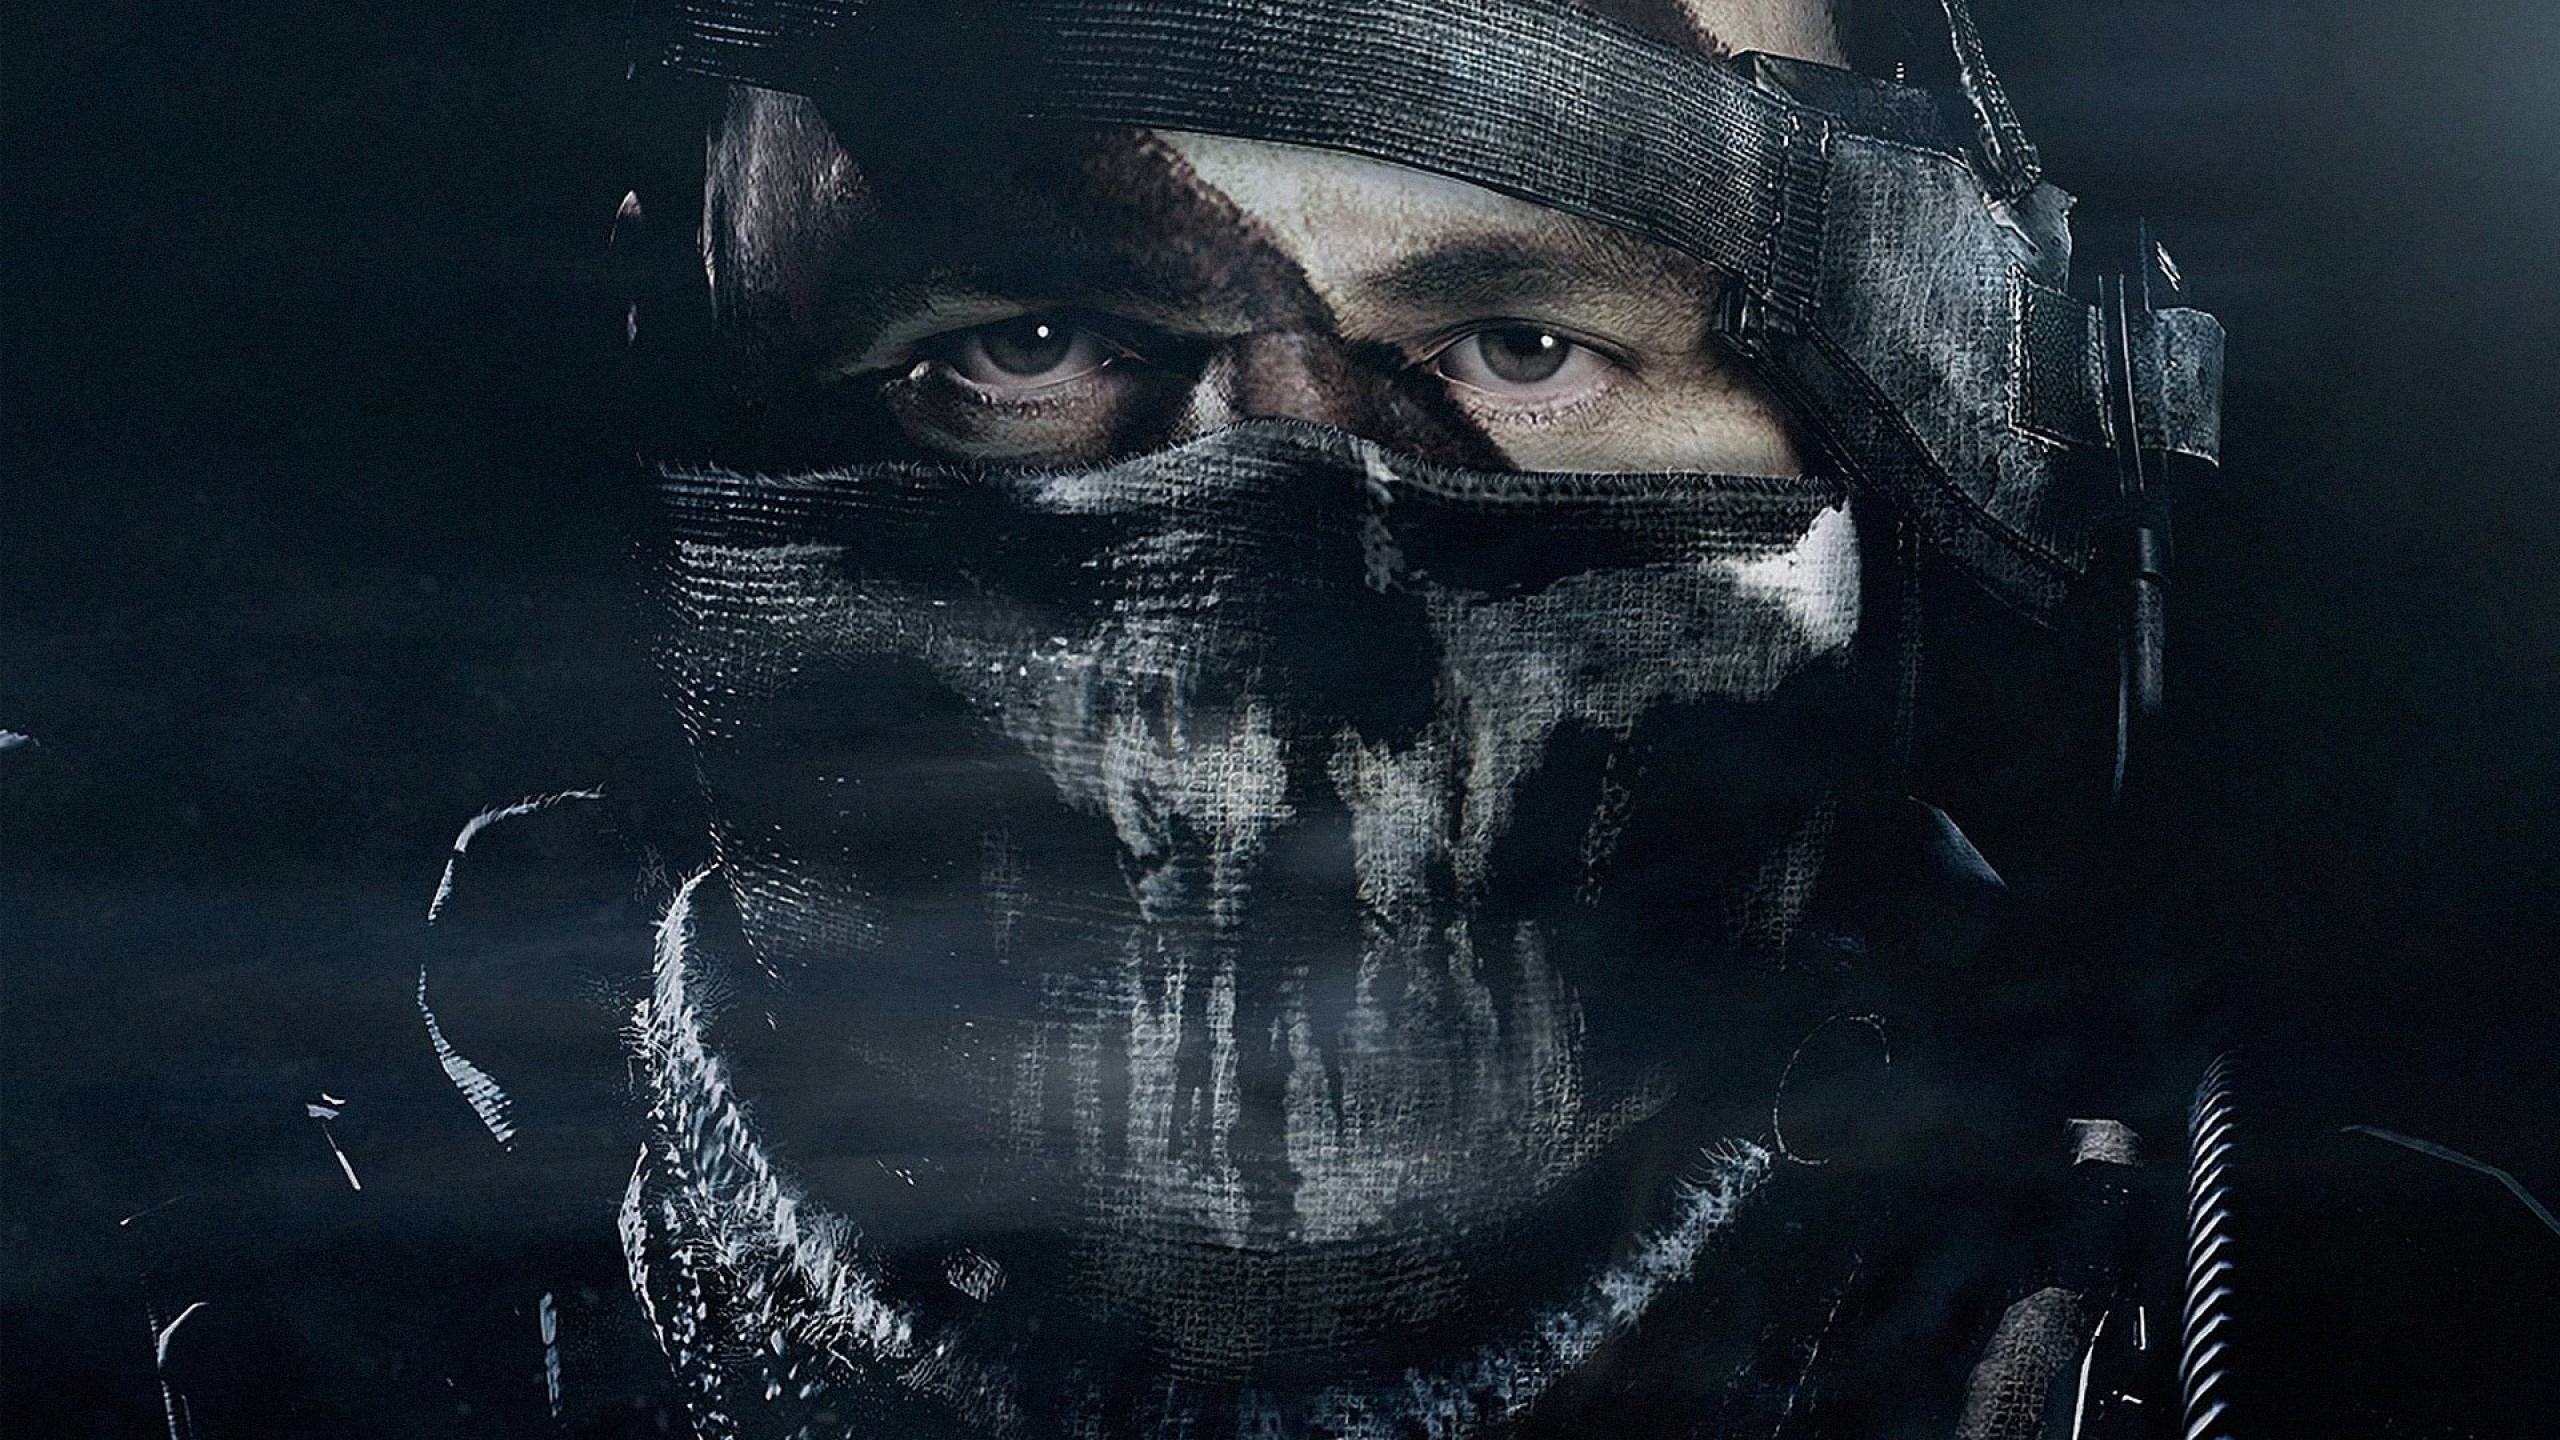 General 2560x1440 Call of Duty: Ghosts Call of Duty video games